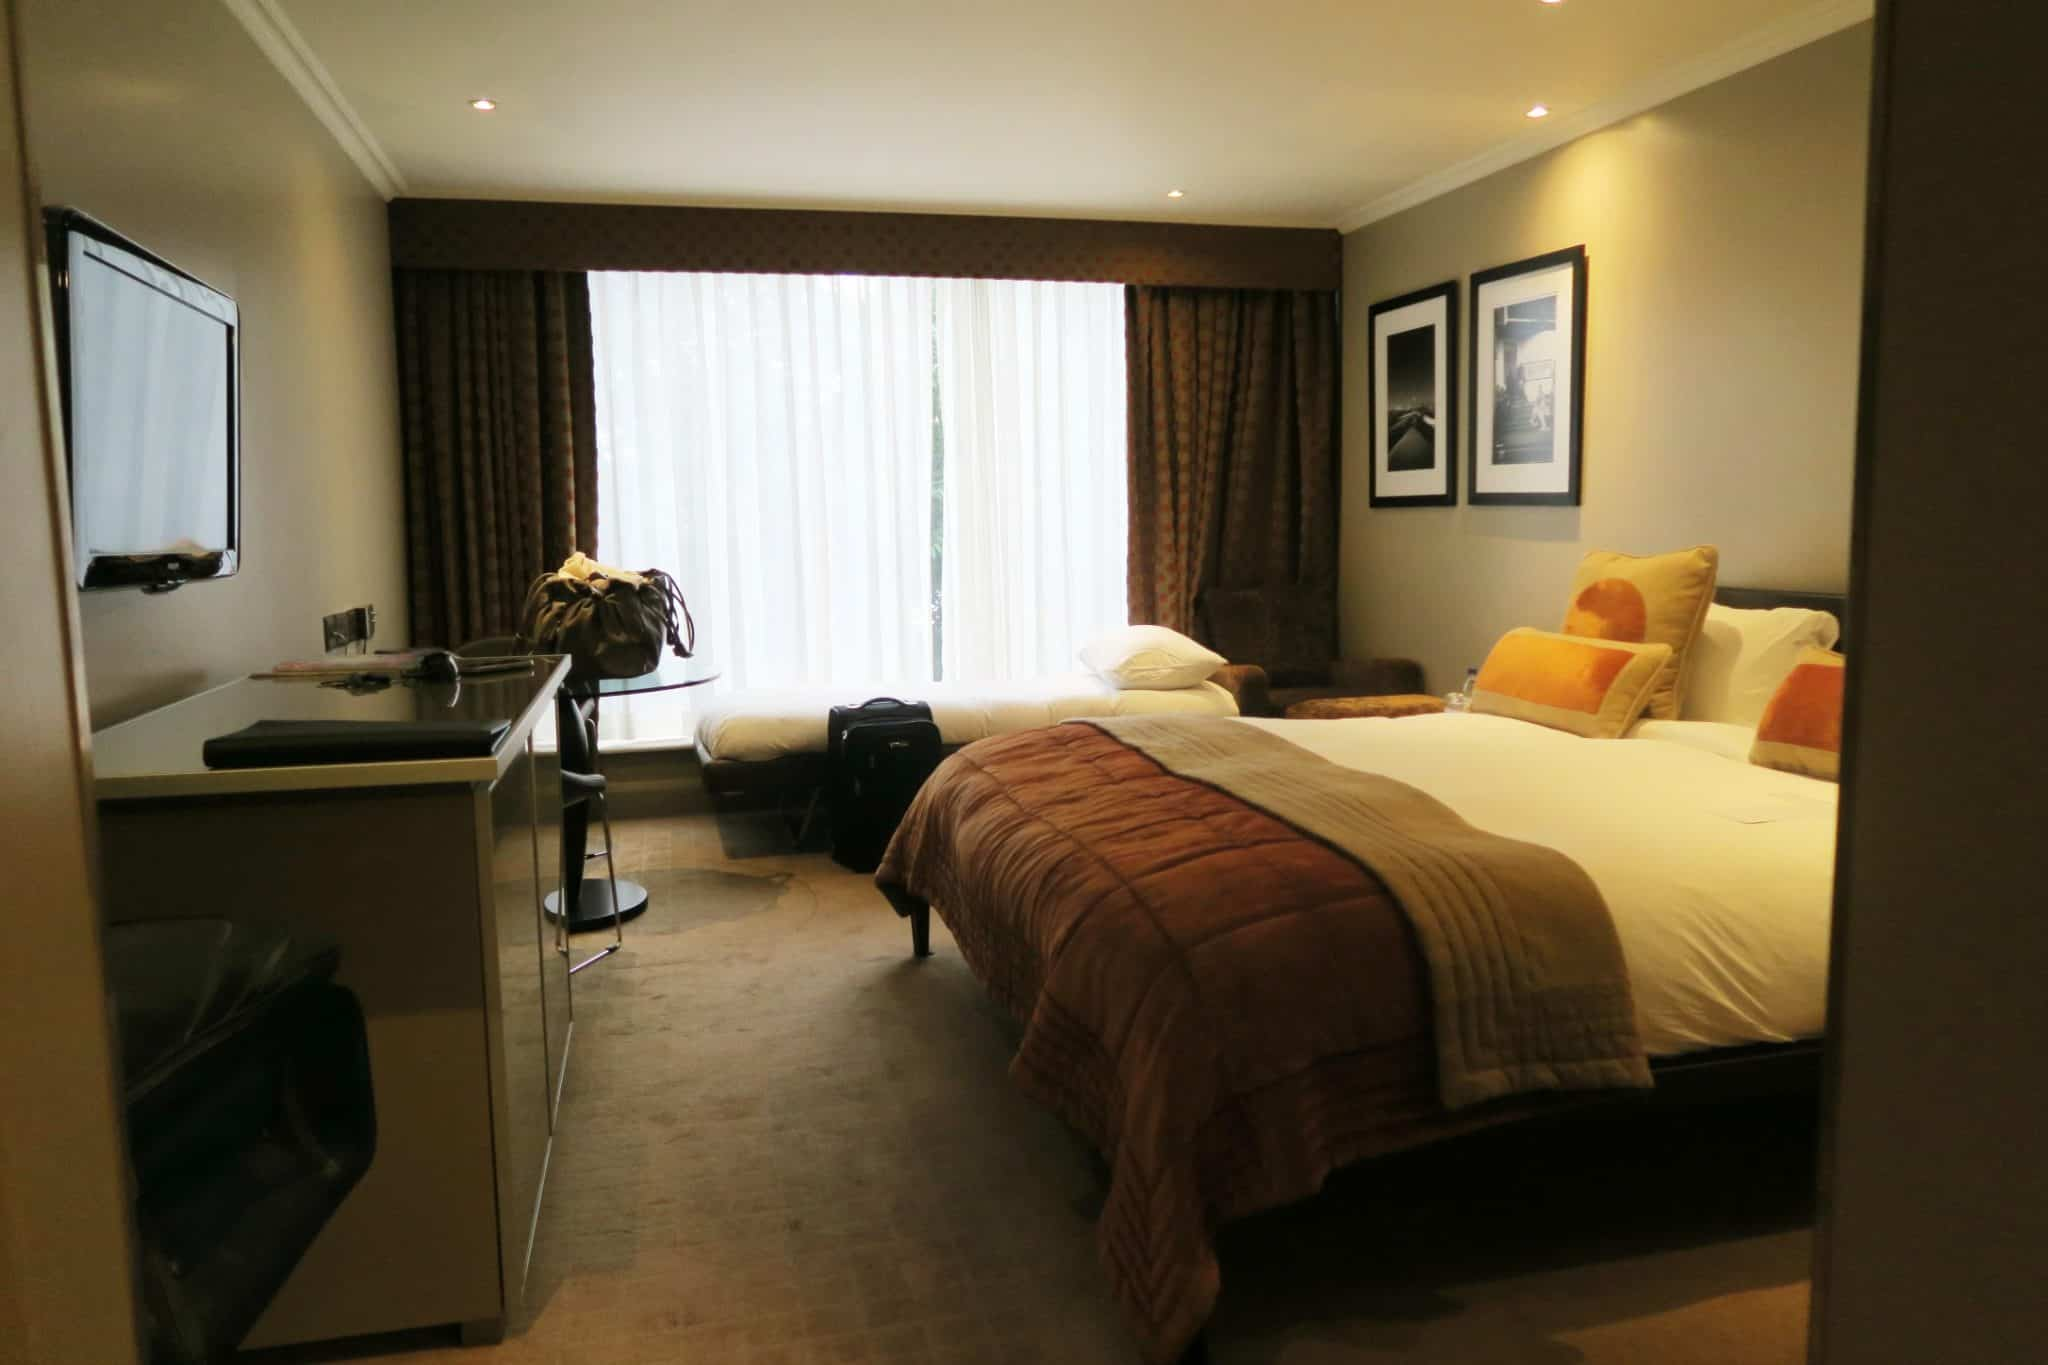 Interior of a triple room at the Radisson Blu Hotel